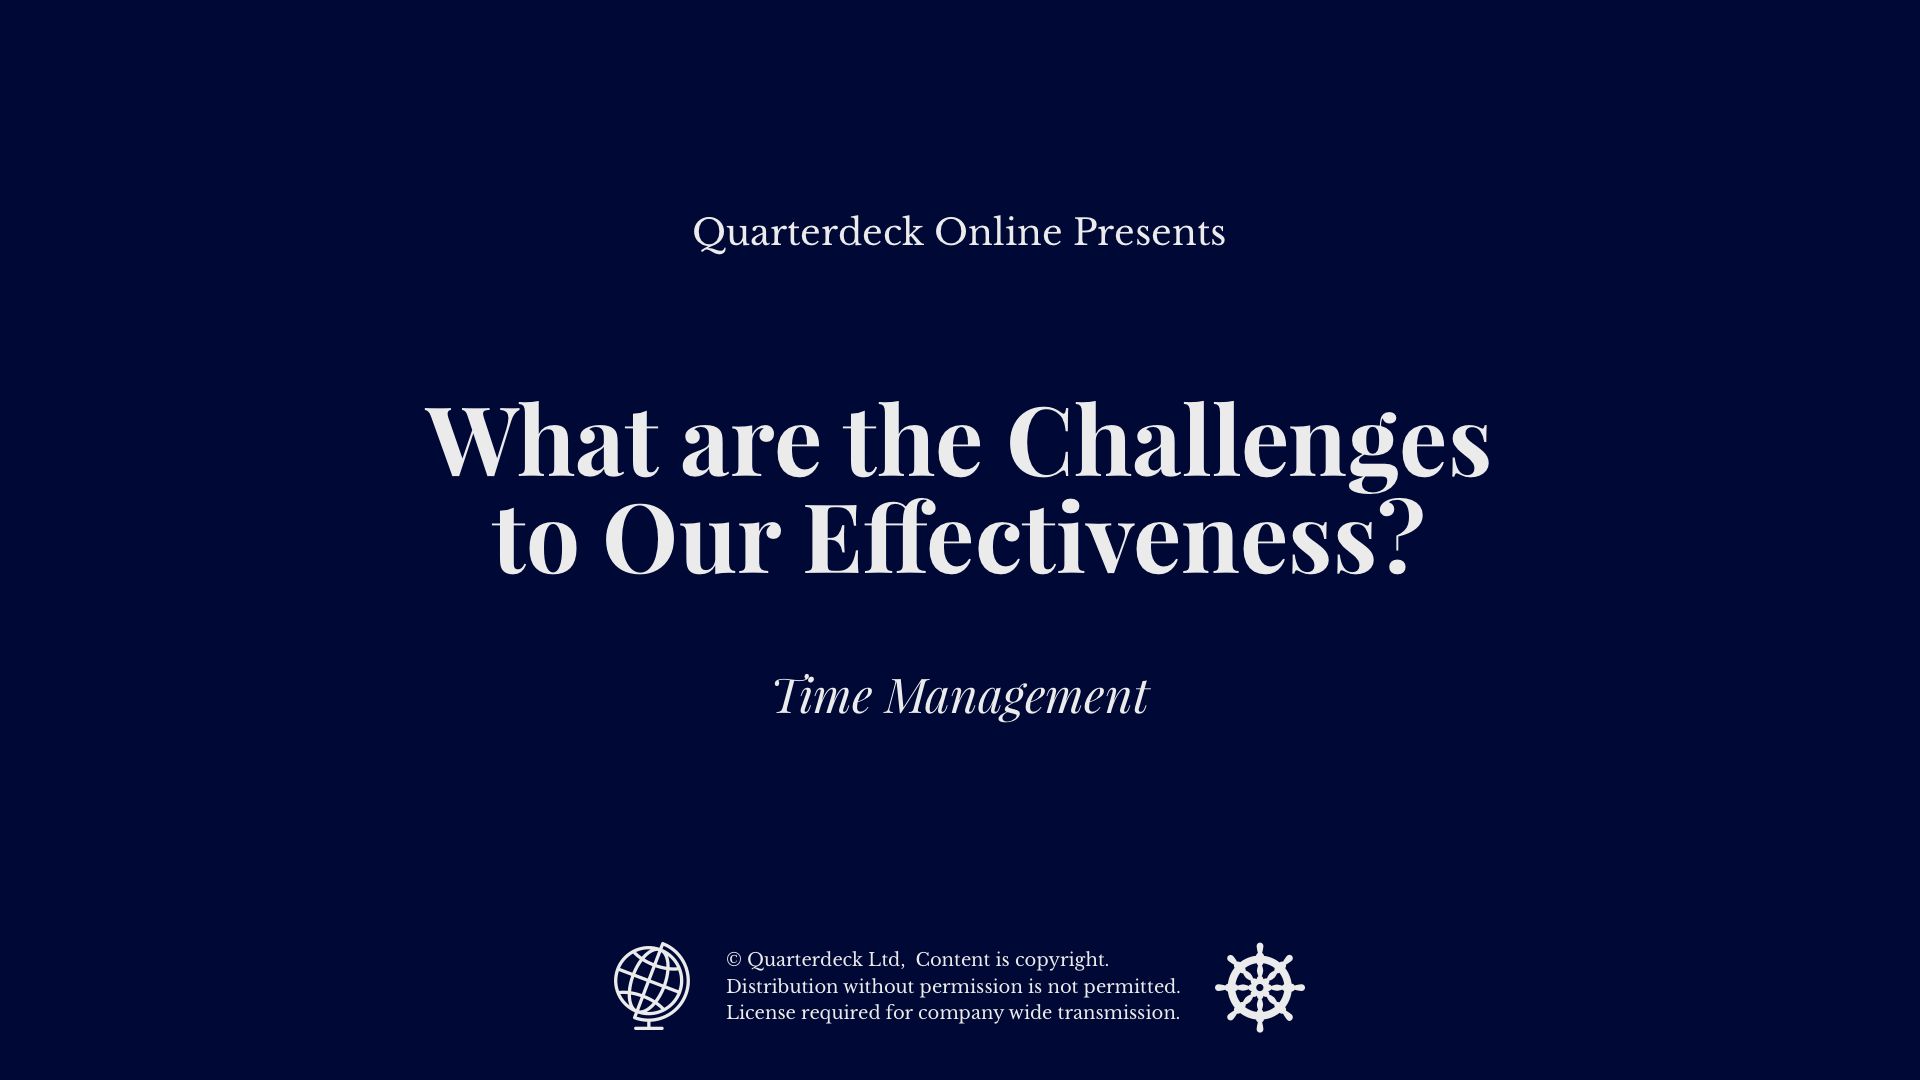 What are the Challenges to Our Effectiveness?